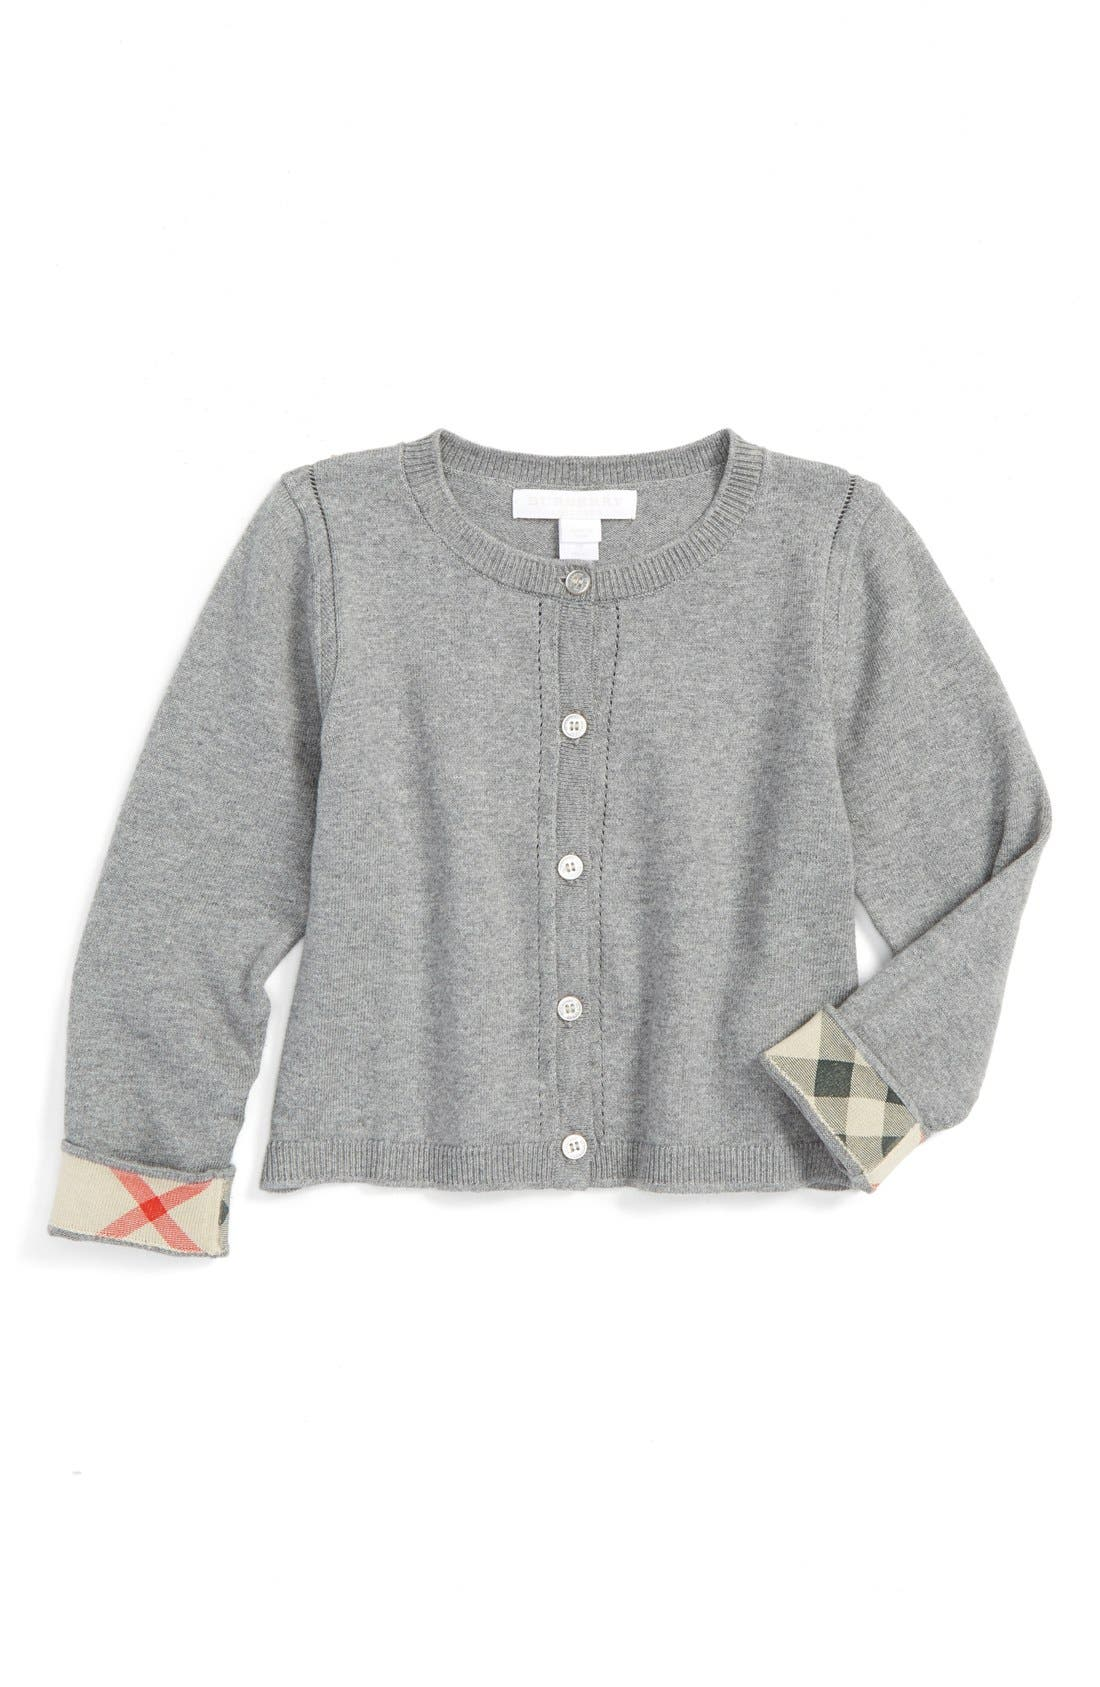 Burberry 'Rheta' Cardigan (Toddler Girls)